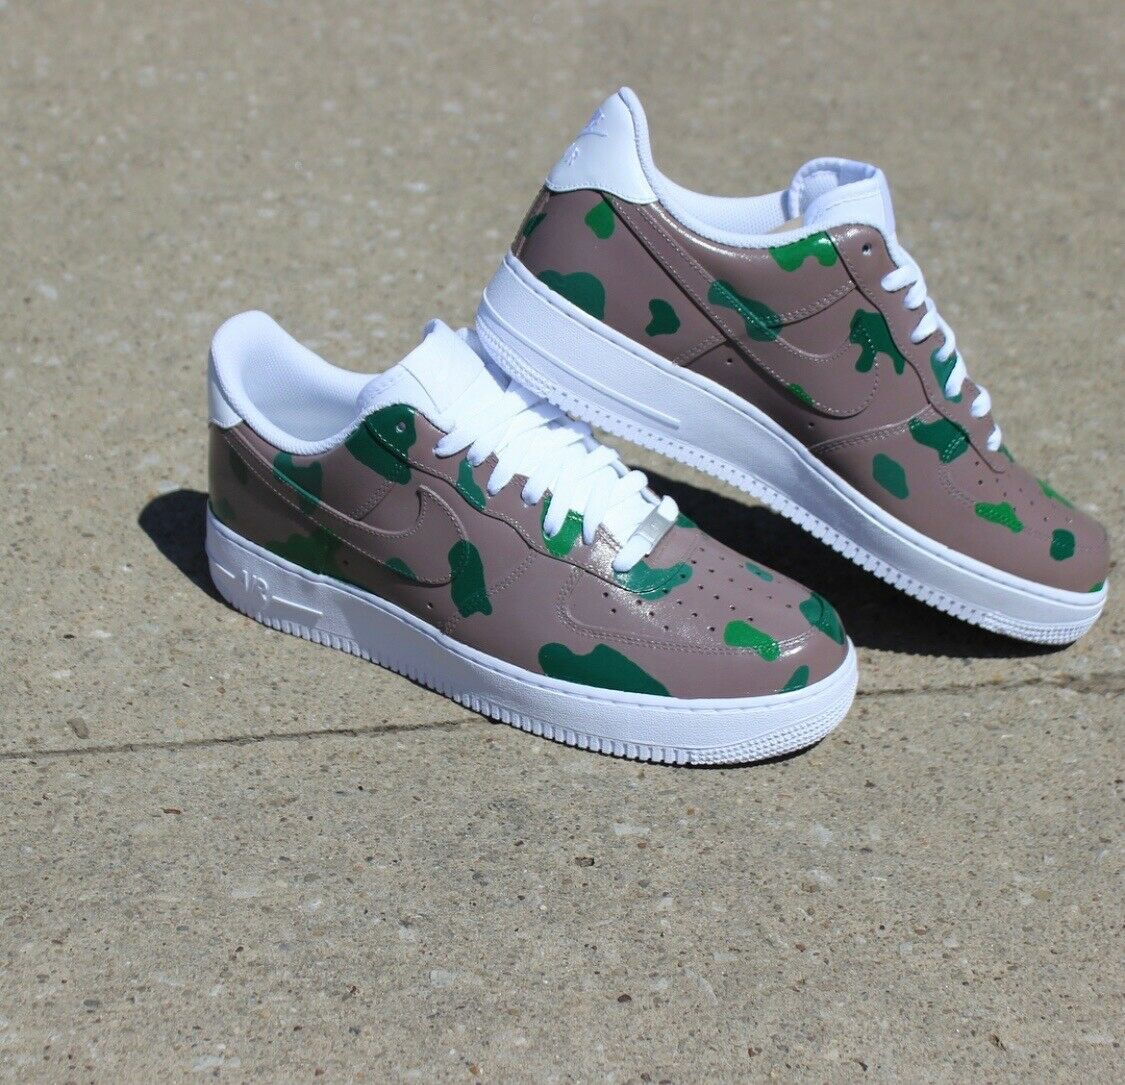 online store 2a8f6 2c041 Nike Air Force 1 s sizes 12, 11,10,10 1 2 2 2